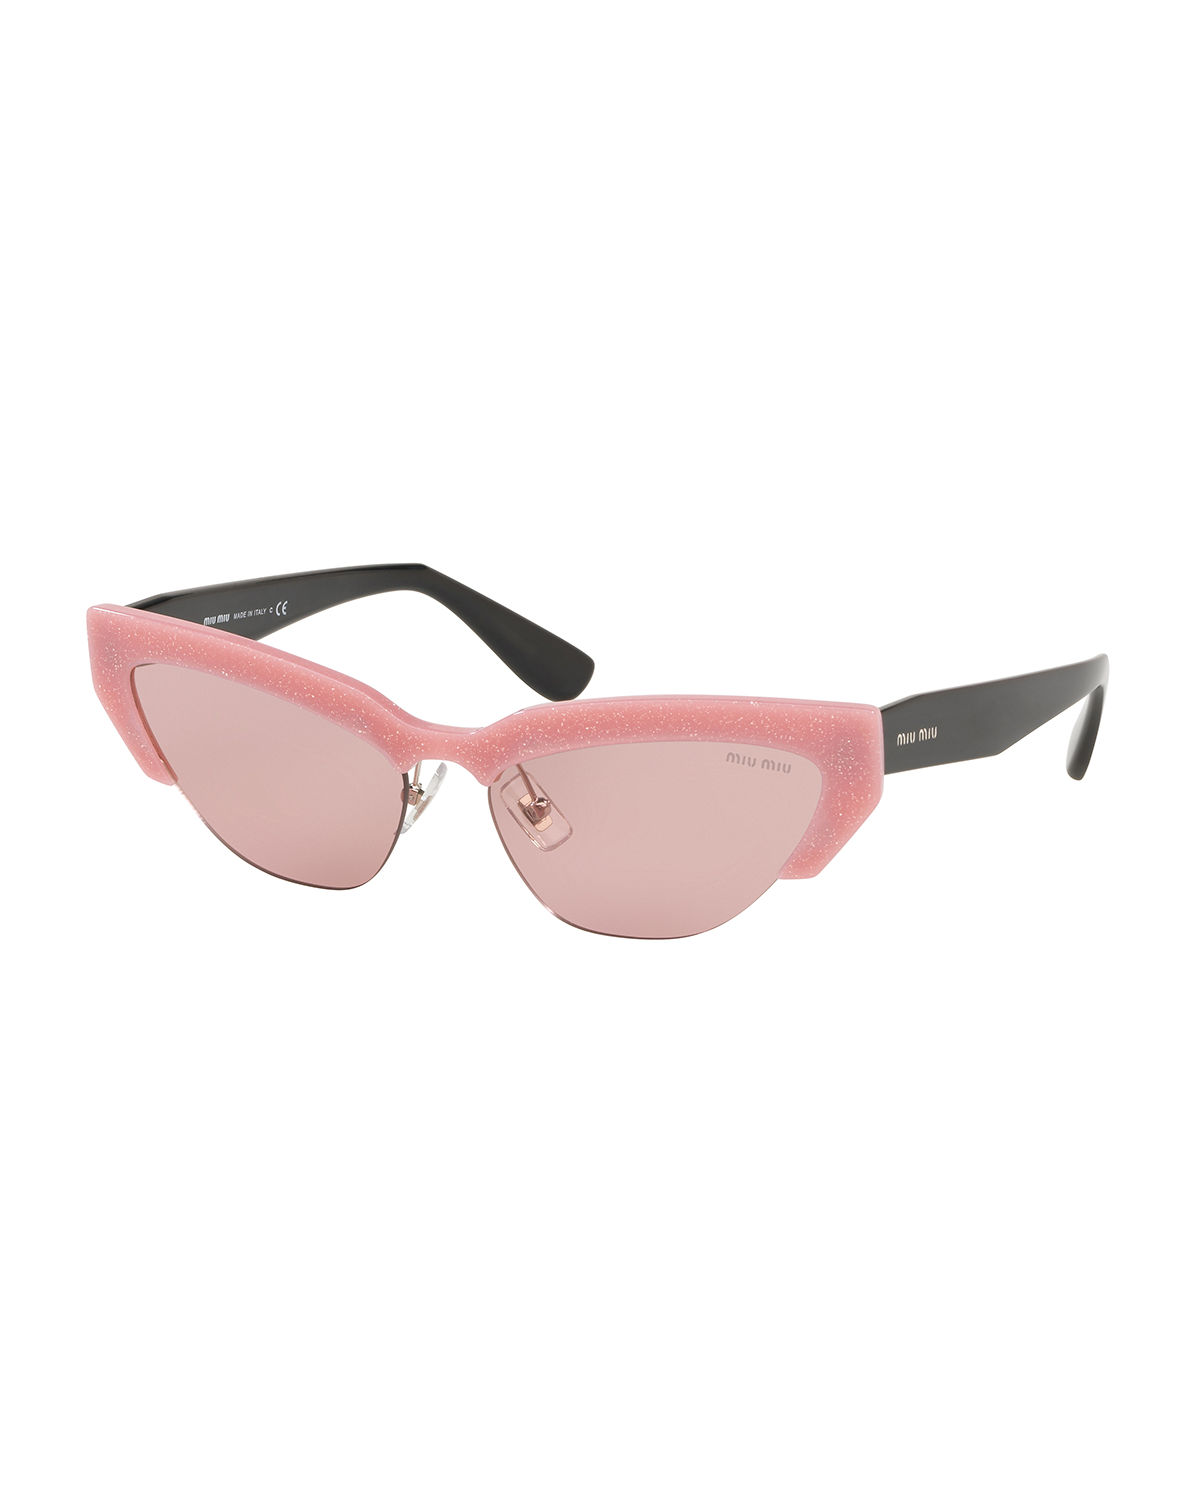 65b3f3b732 Miu Miu Semi-Rimless Cat-Eye Sunglasses In Glitter Alabaster   Light Pink